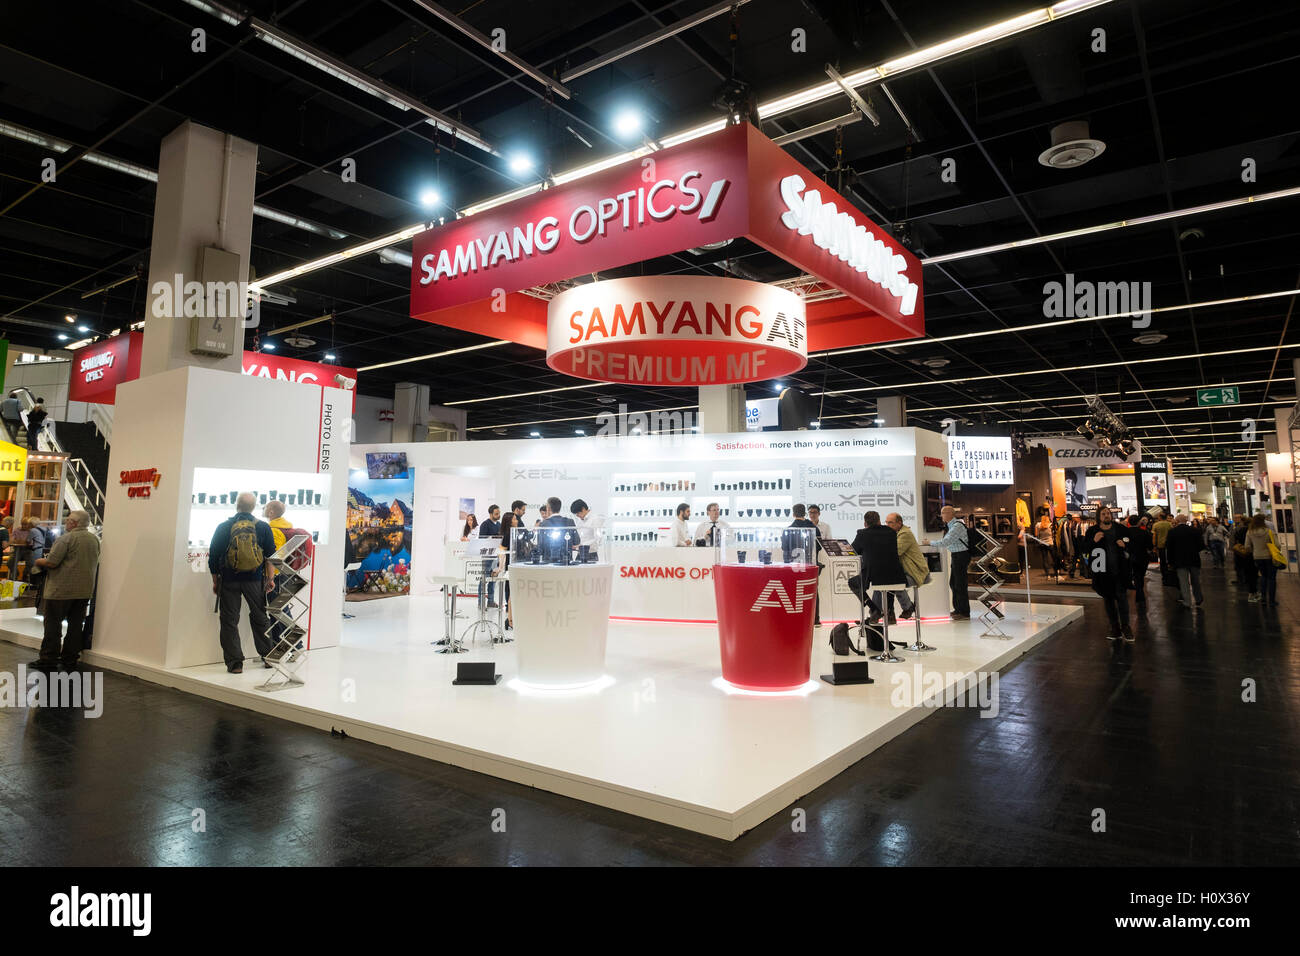 Samyang optics company stand at Photokina trade fair in Cologne, Germany , 2016 - Stock Image